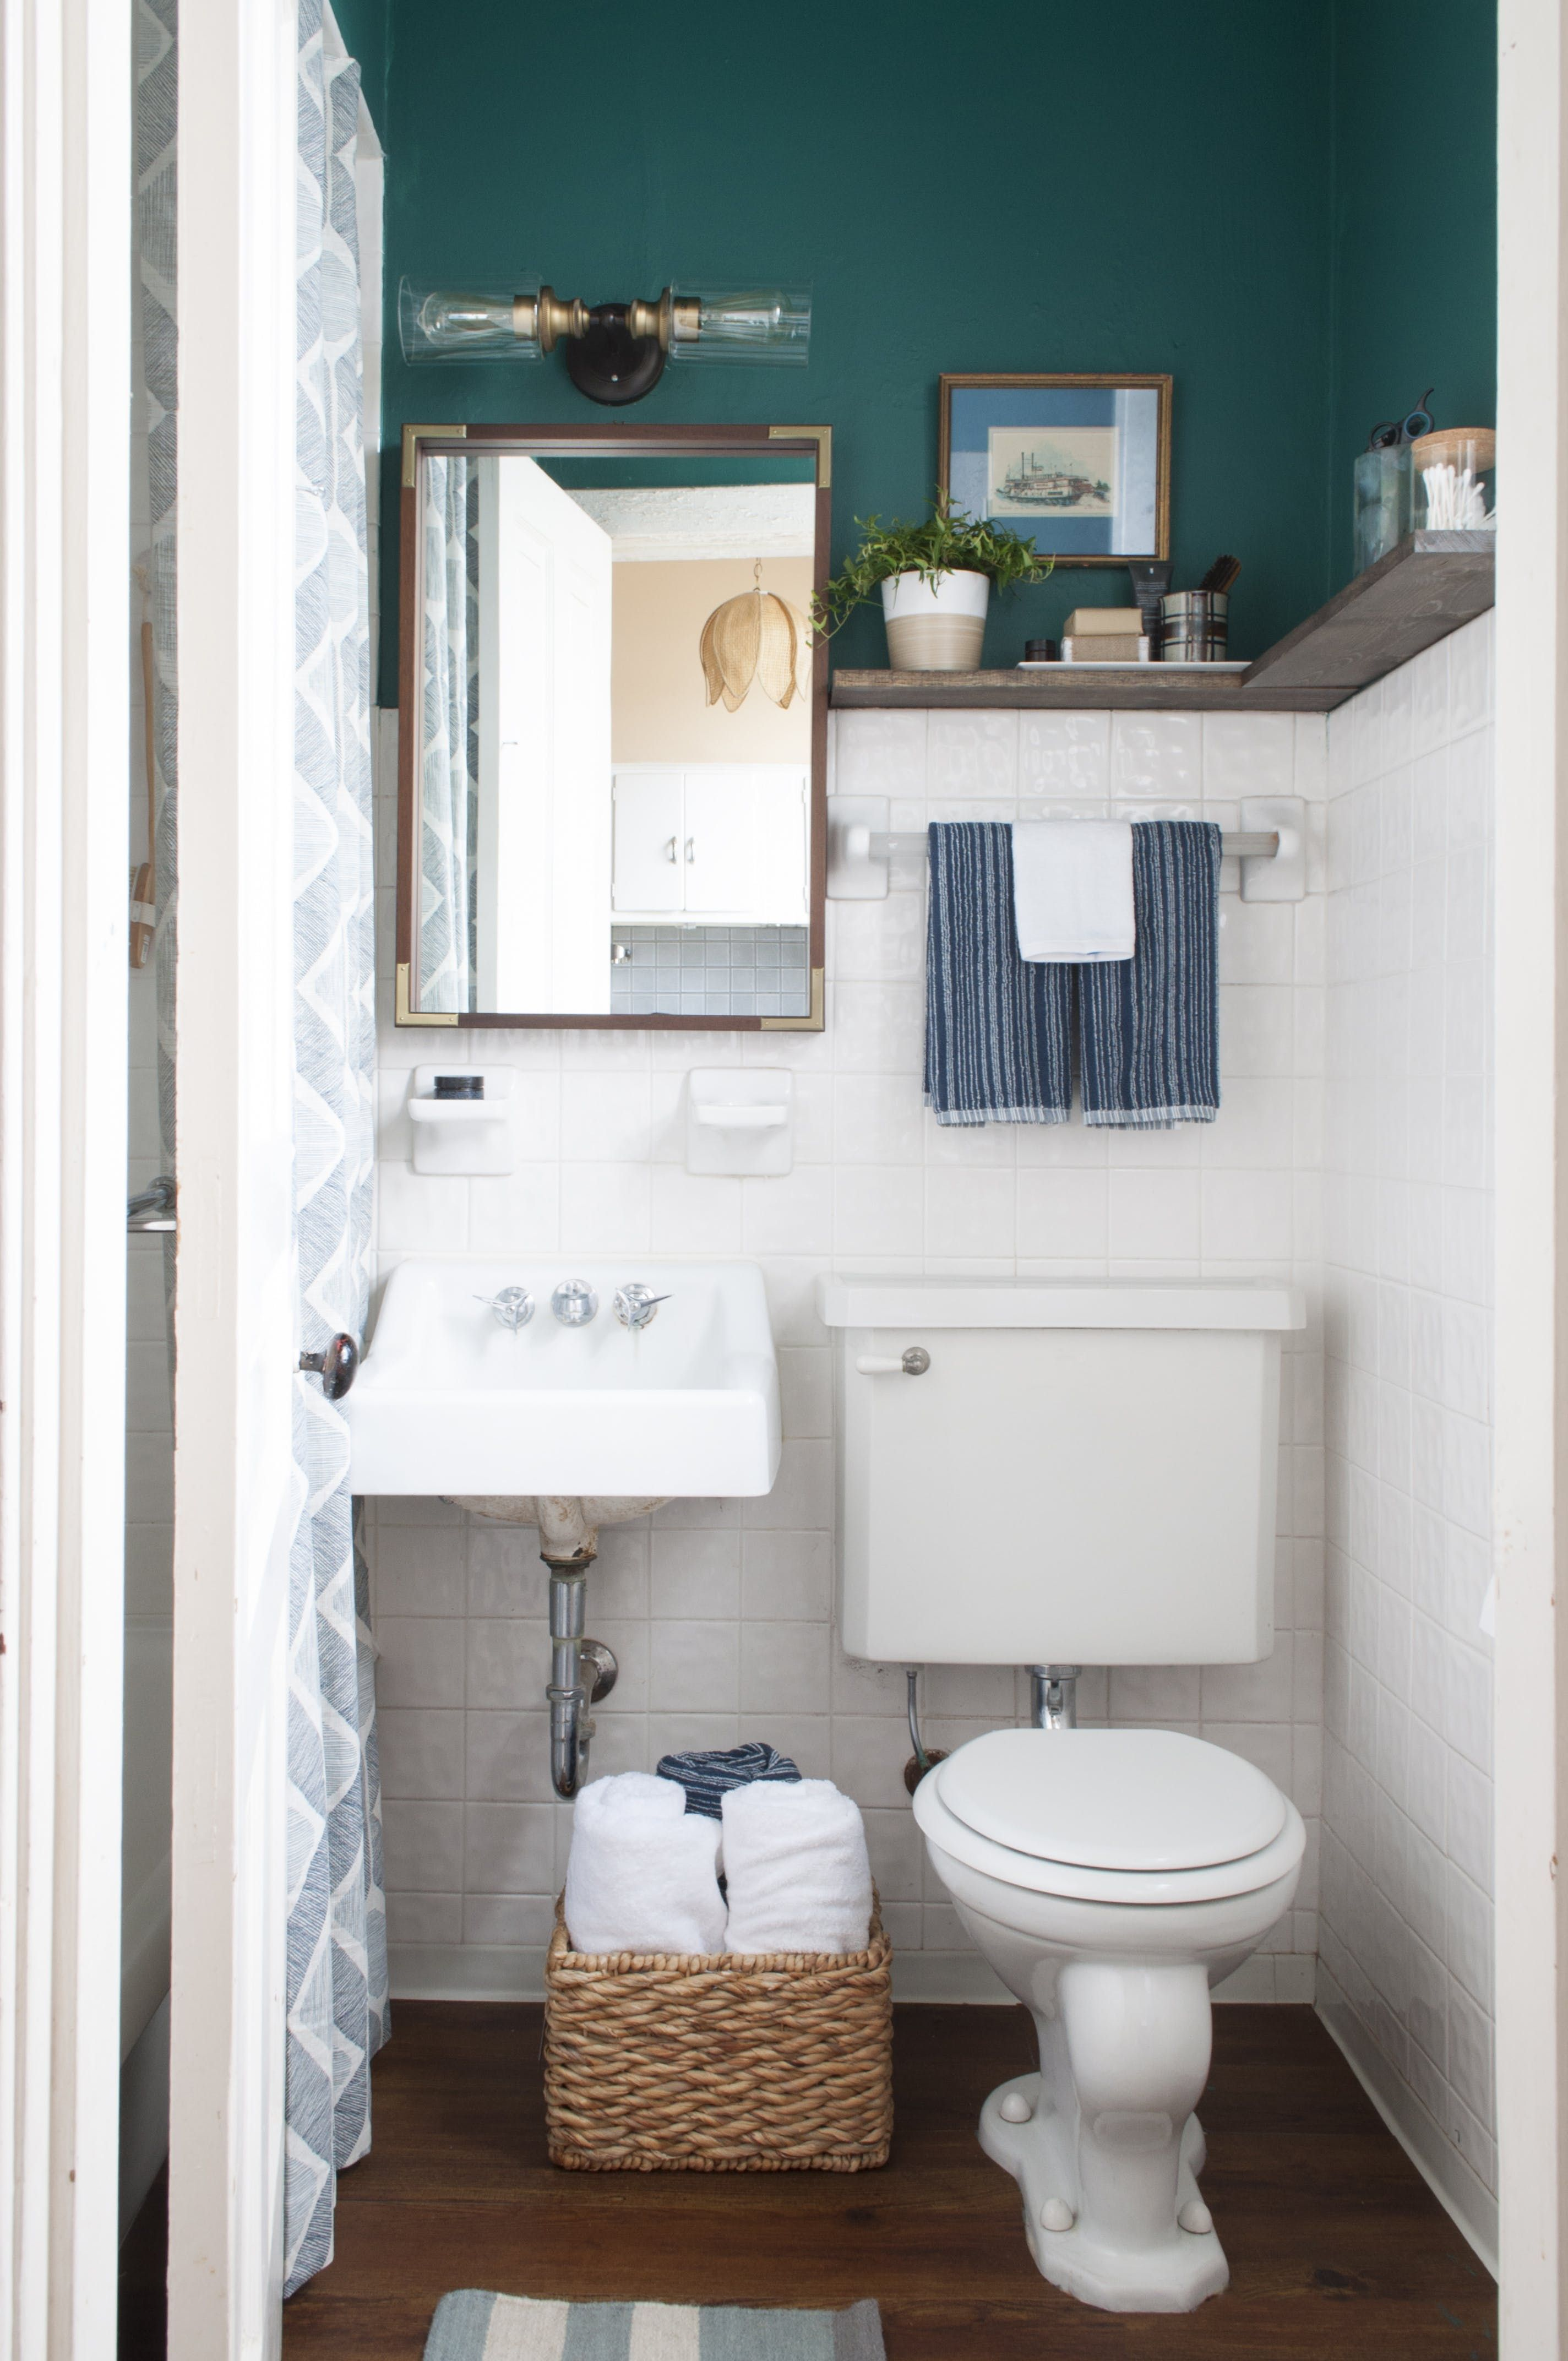 rental apartment bathroom ideas. A 100% Reversible Rental Bathroom Makeover For Under $500 \u2014 Apartment Therapy Original Ideas Pinterest